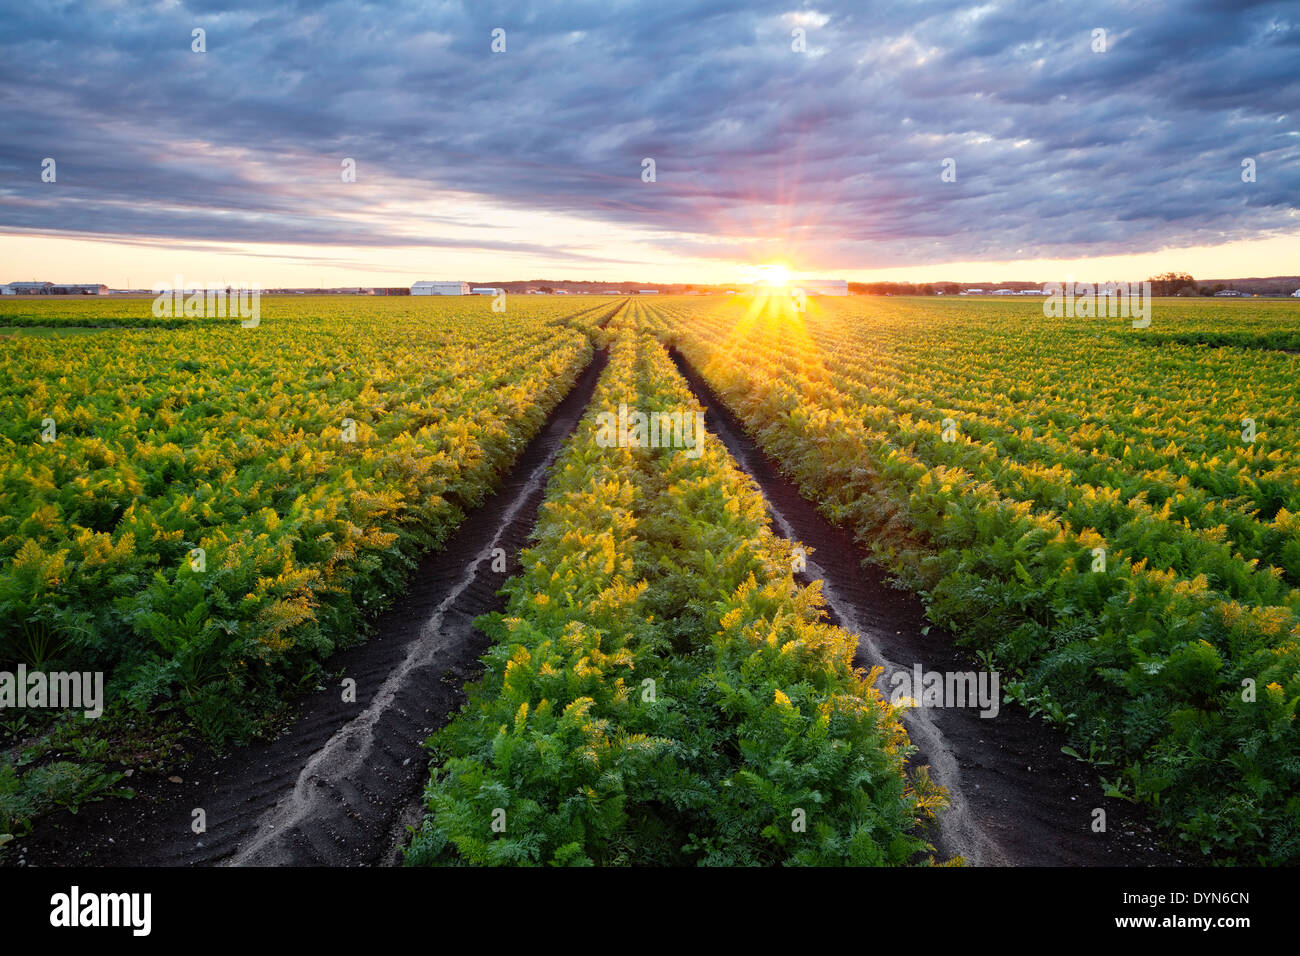 A mature field of carrots in the Holland marsh at sunrise. Bradford West Gwillimbury, Ontario, Canada. - Stock Image